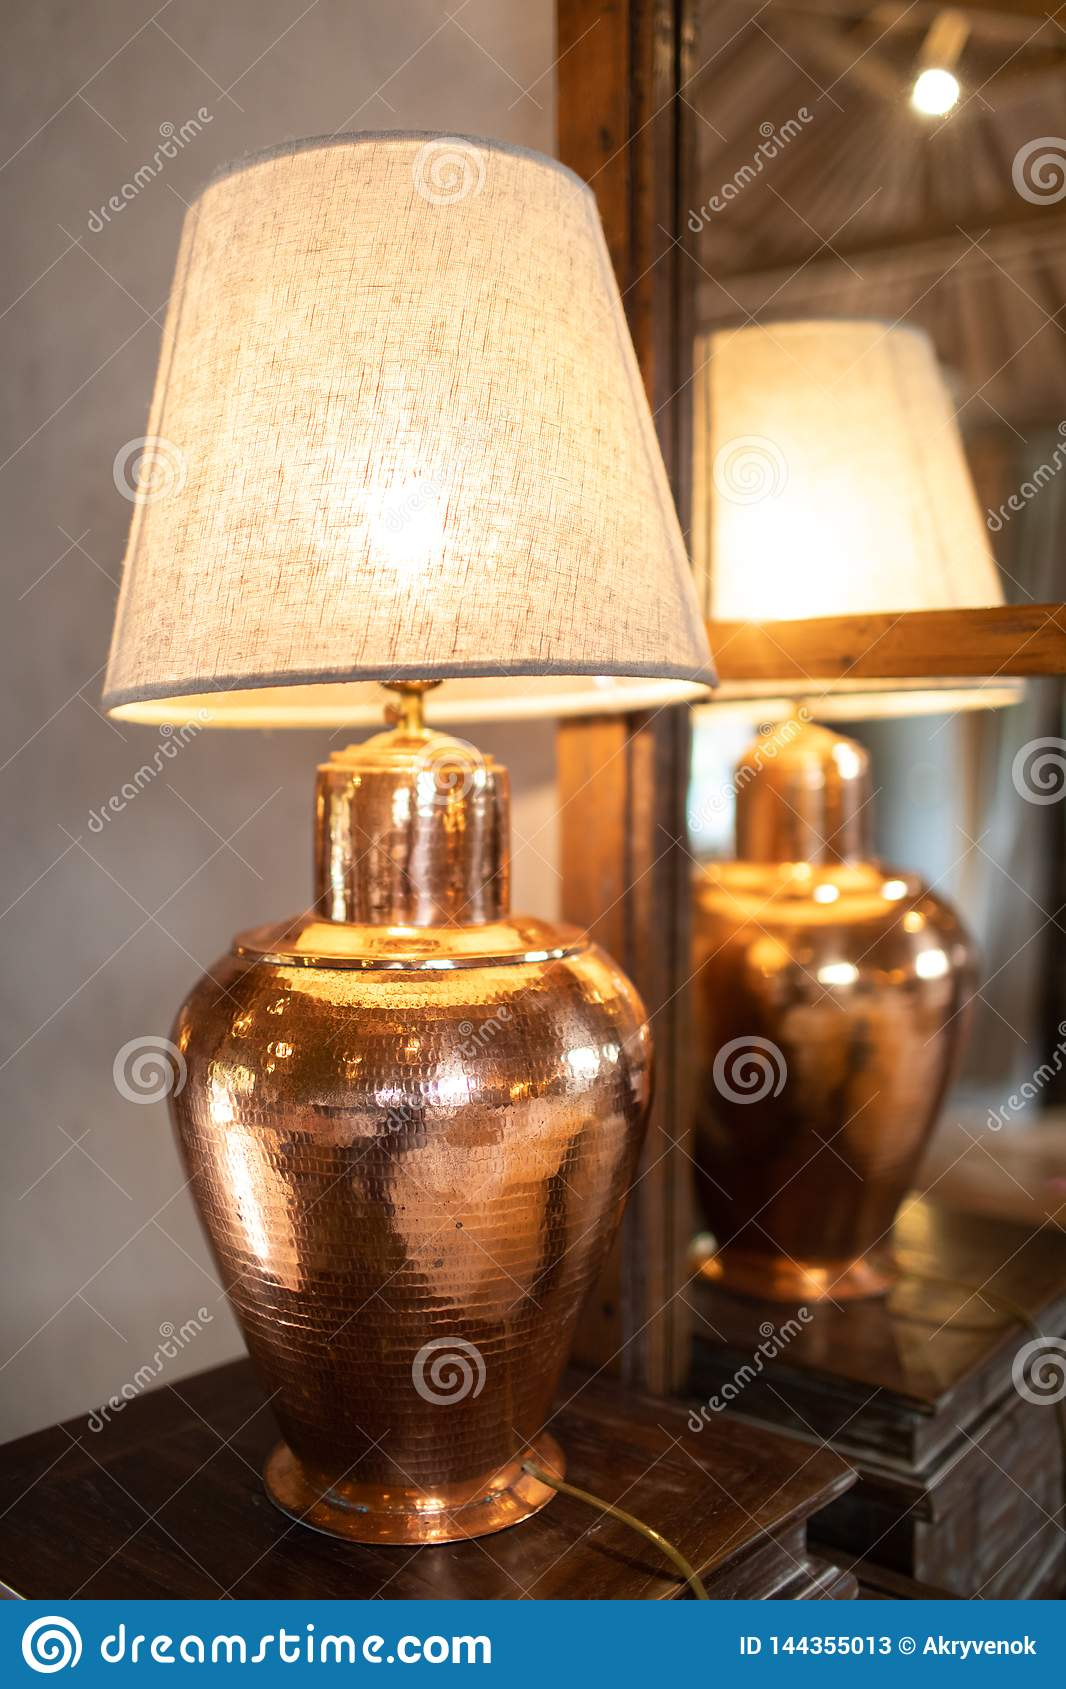 Bronze lamp on wood table.